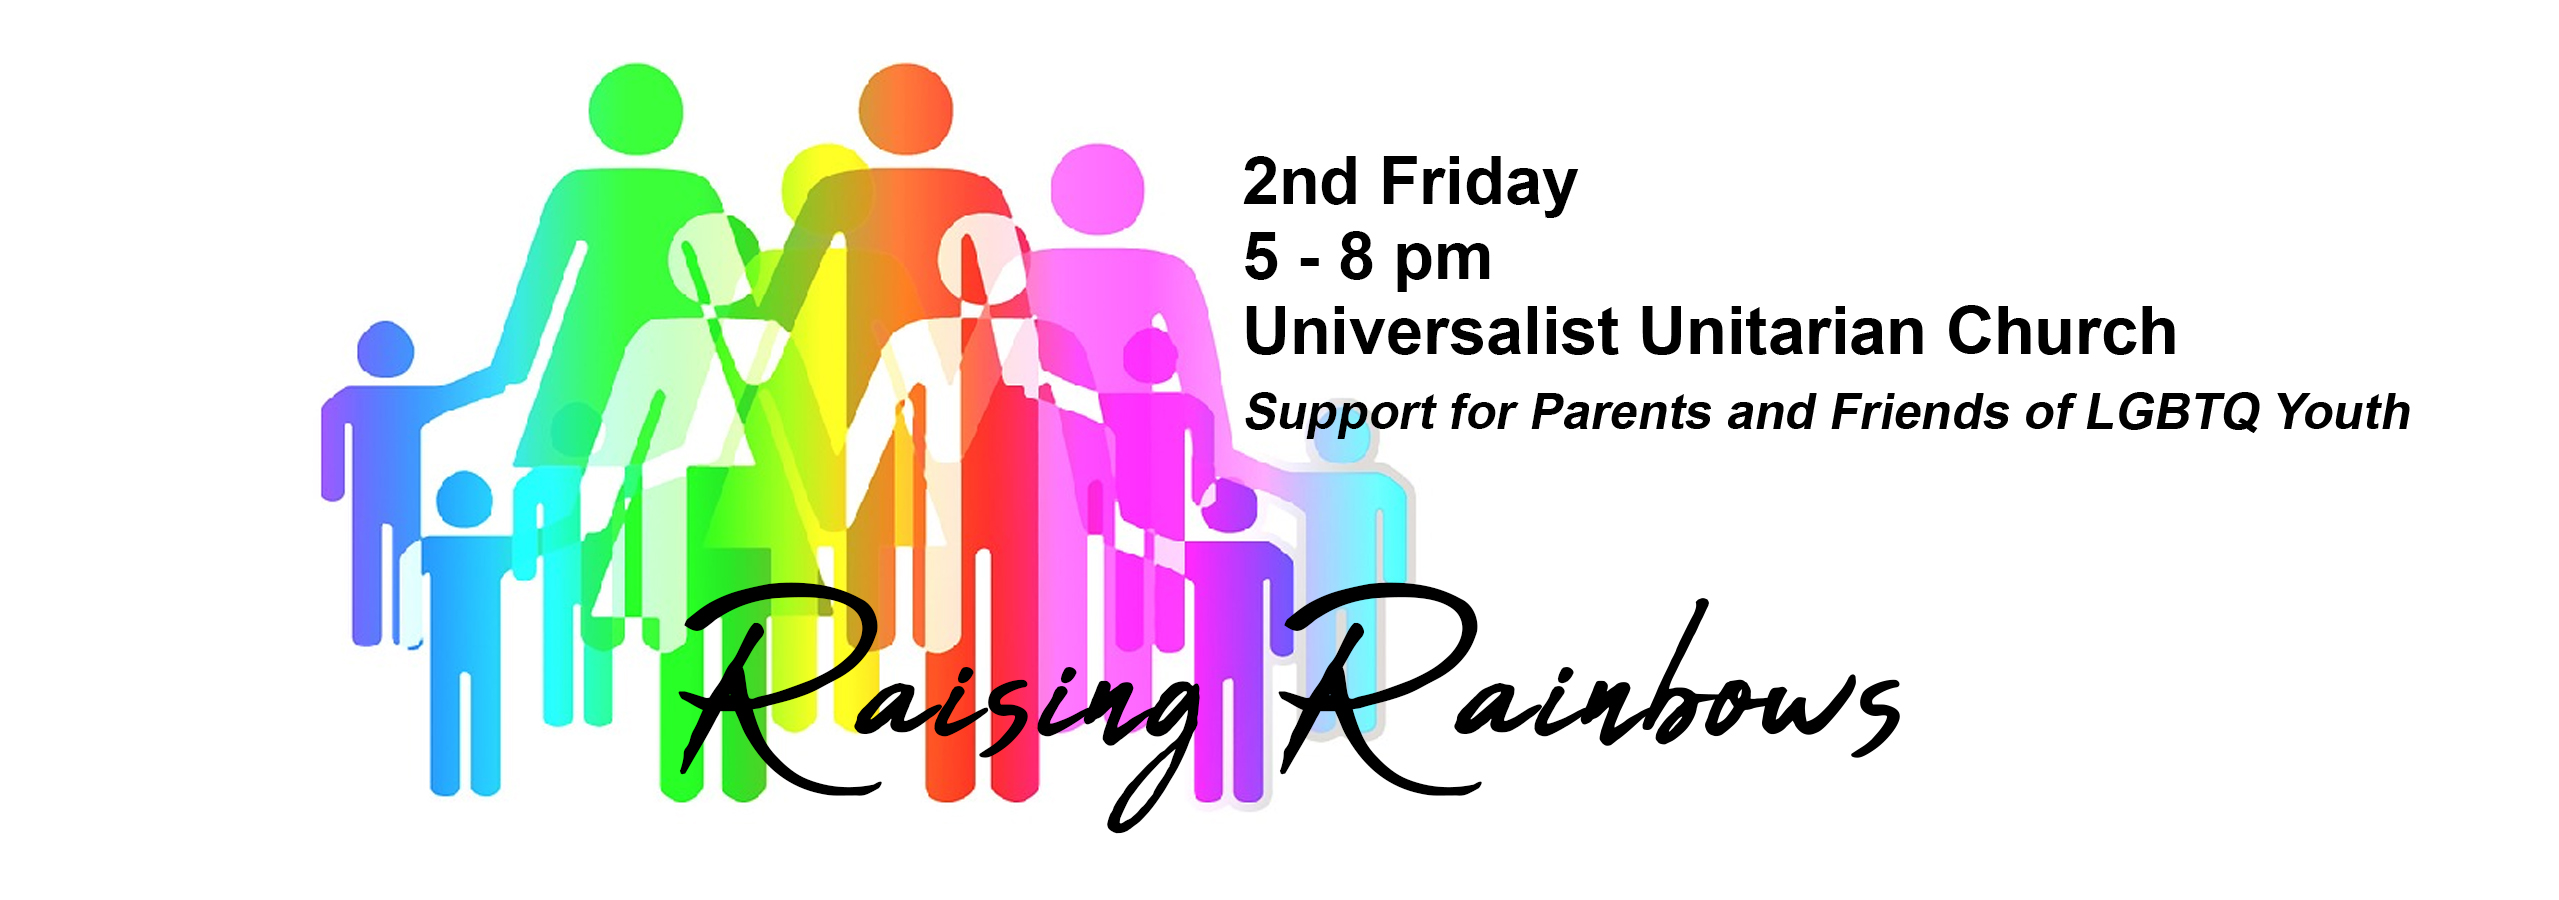 Raising Rainbows banner